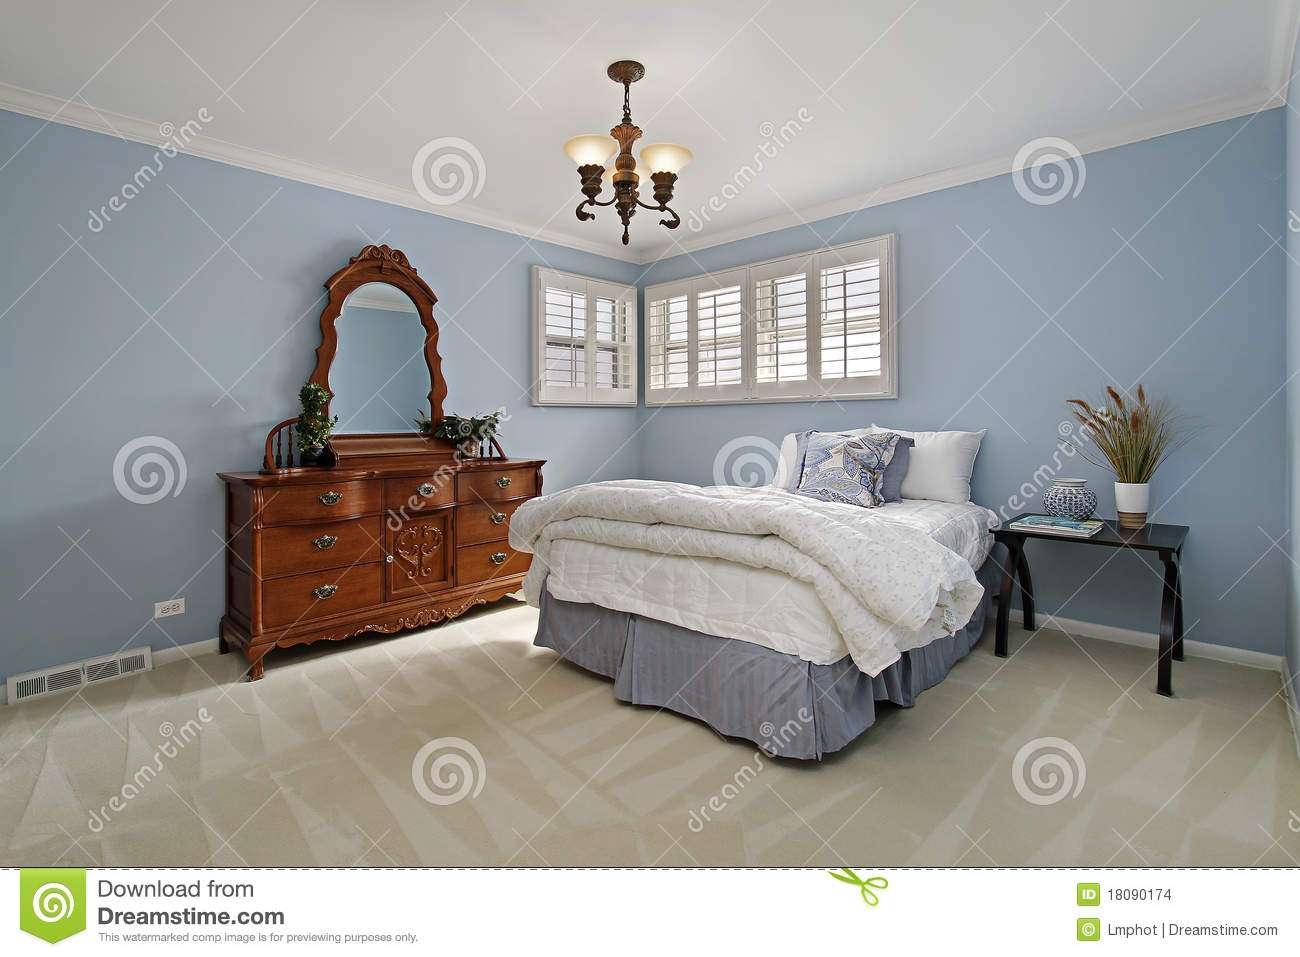 Light Blue Bedroom Closets Empty Small Room Walls Brown Carpet Floor